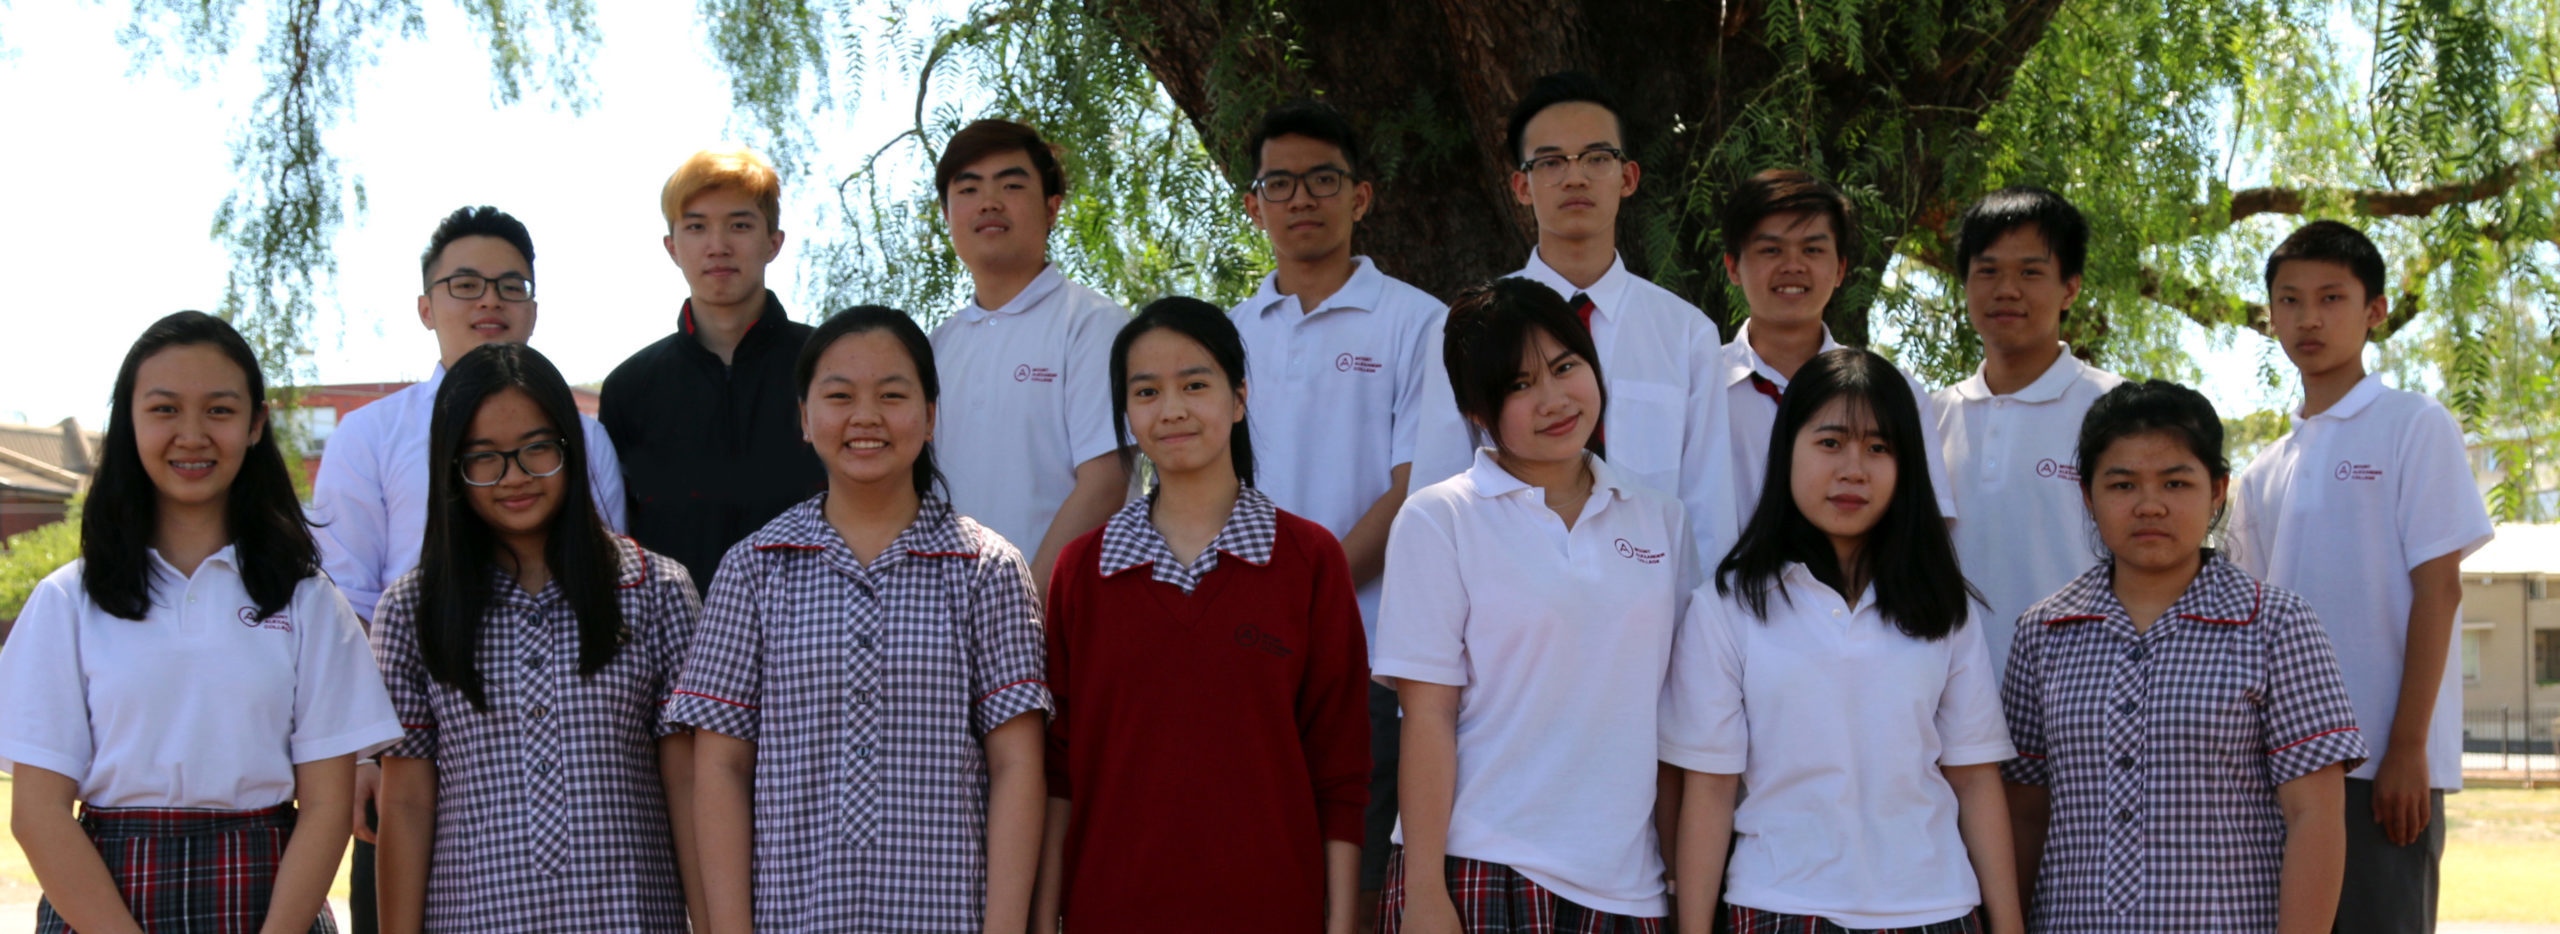 We have a rich program for international students